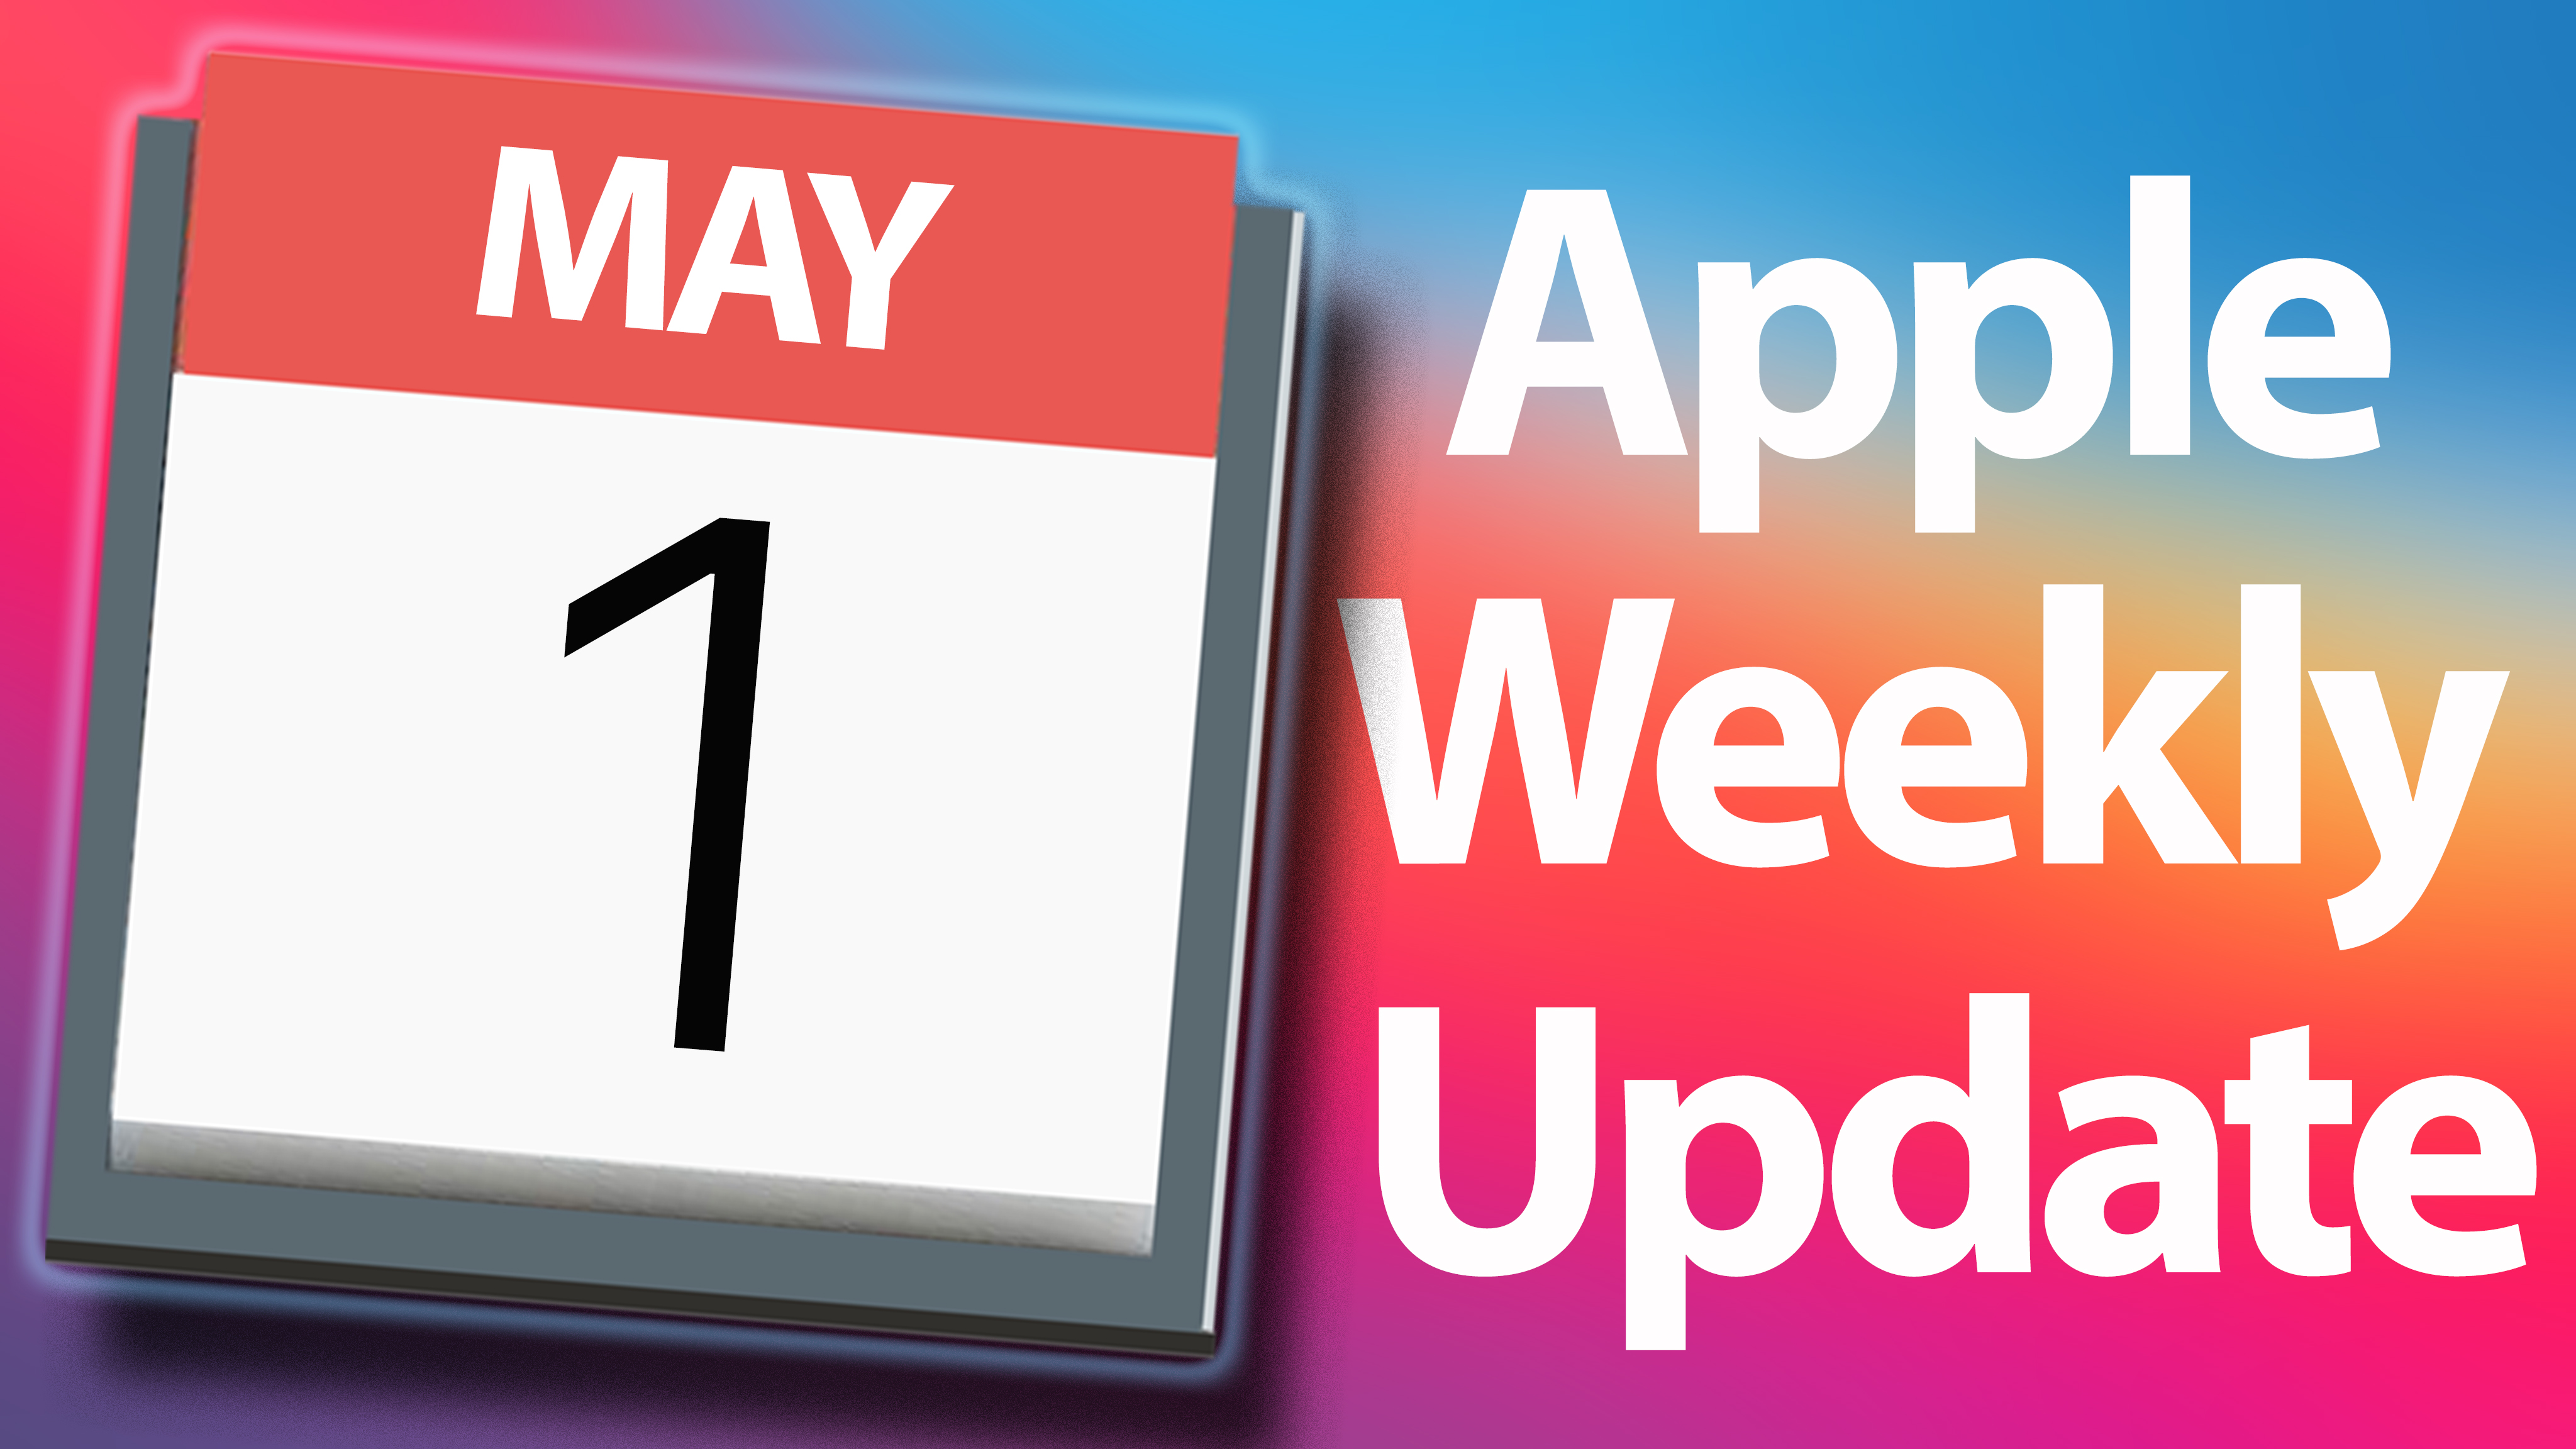 Apple's Weekly Update: all of the OSes, all new furnishings, all the money